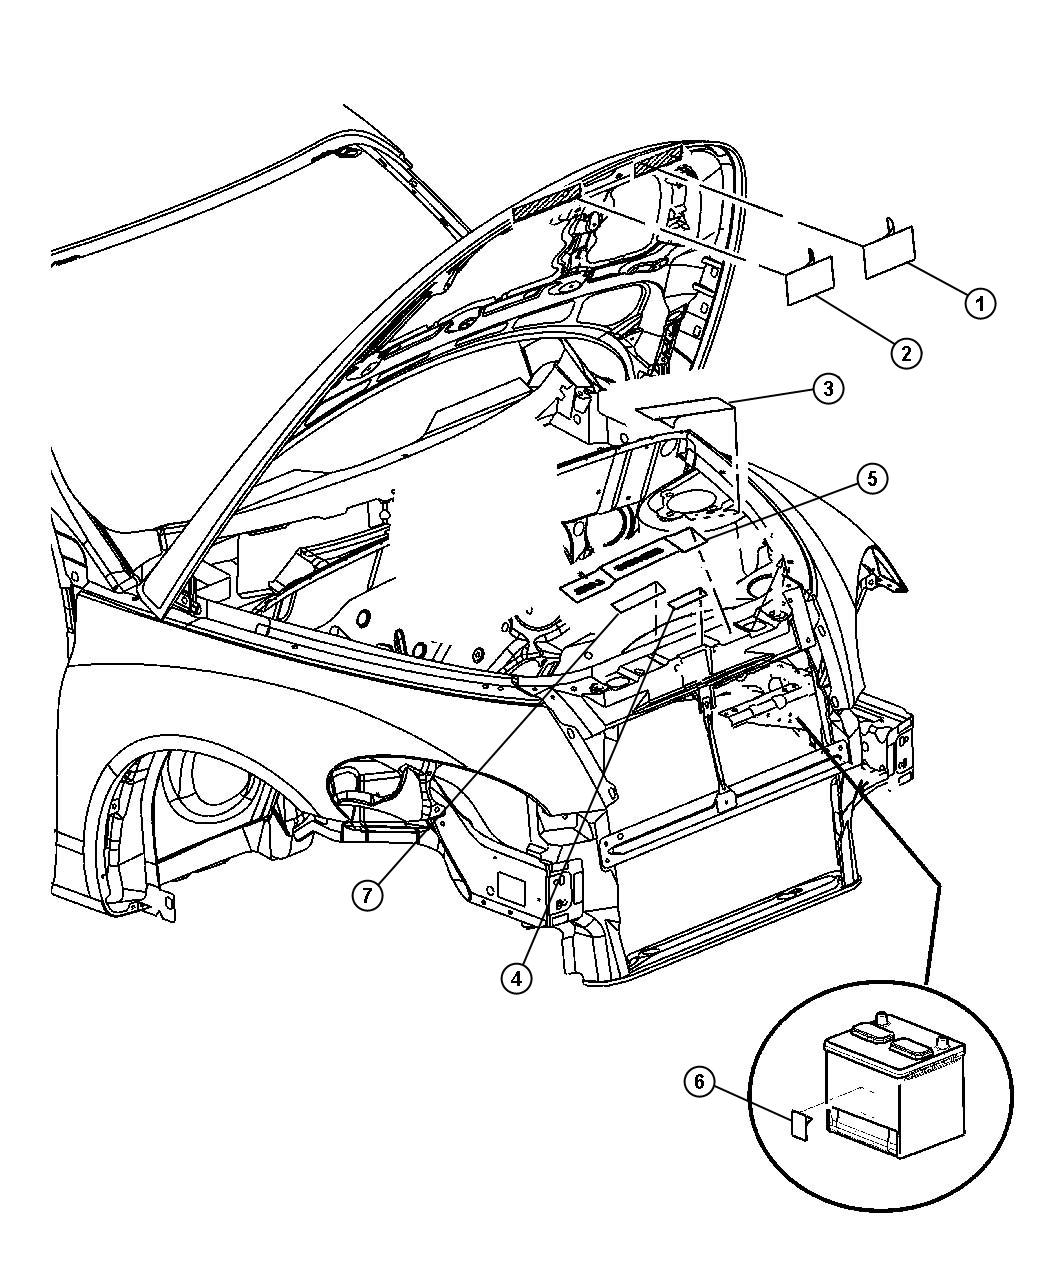 Show Picture Of 2006 2.4l Pt Cruiser Wiring Diagram